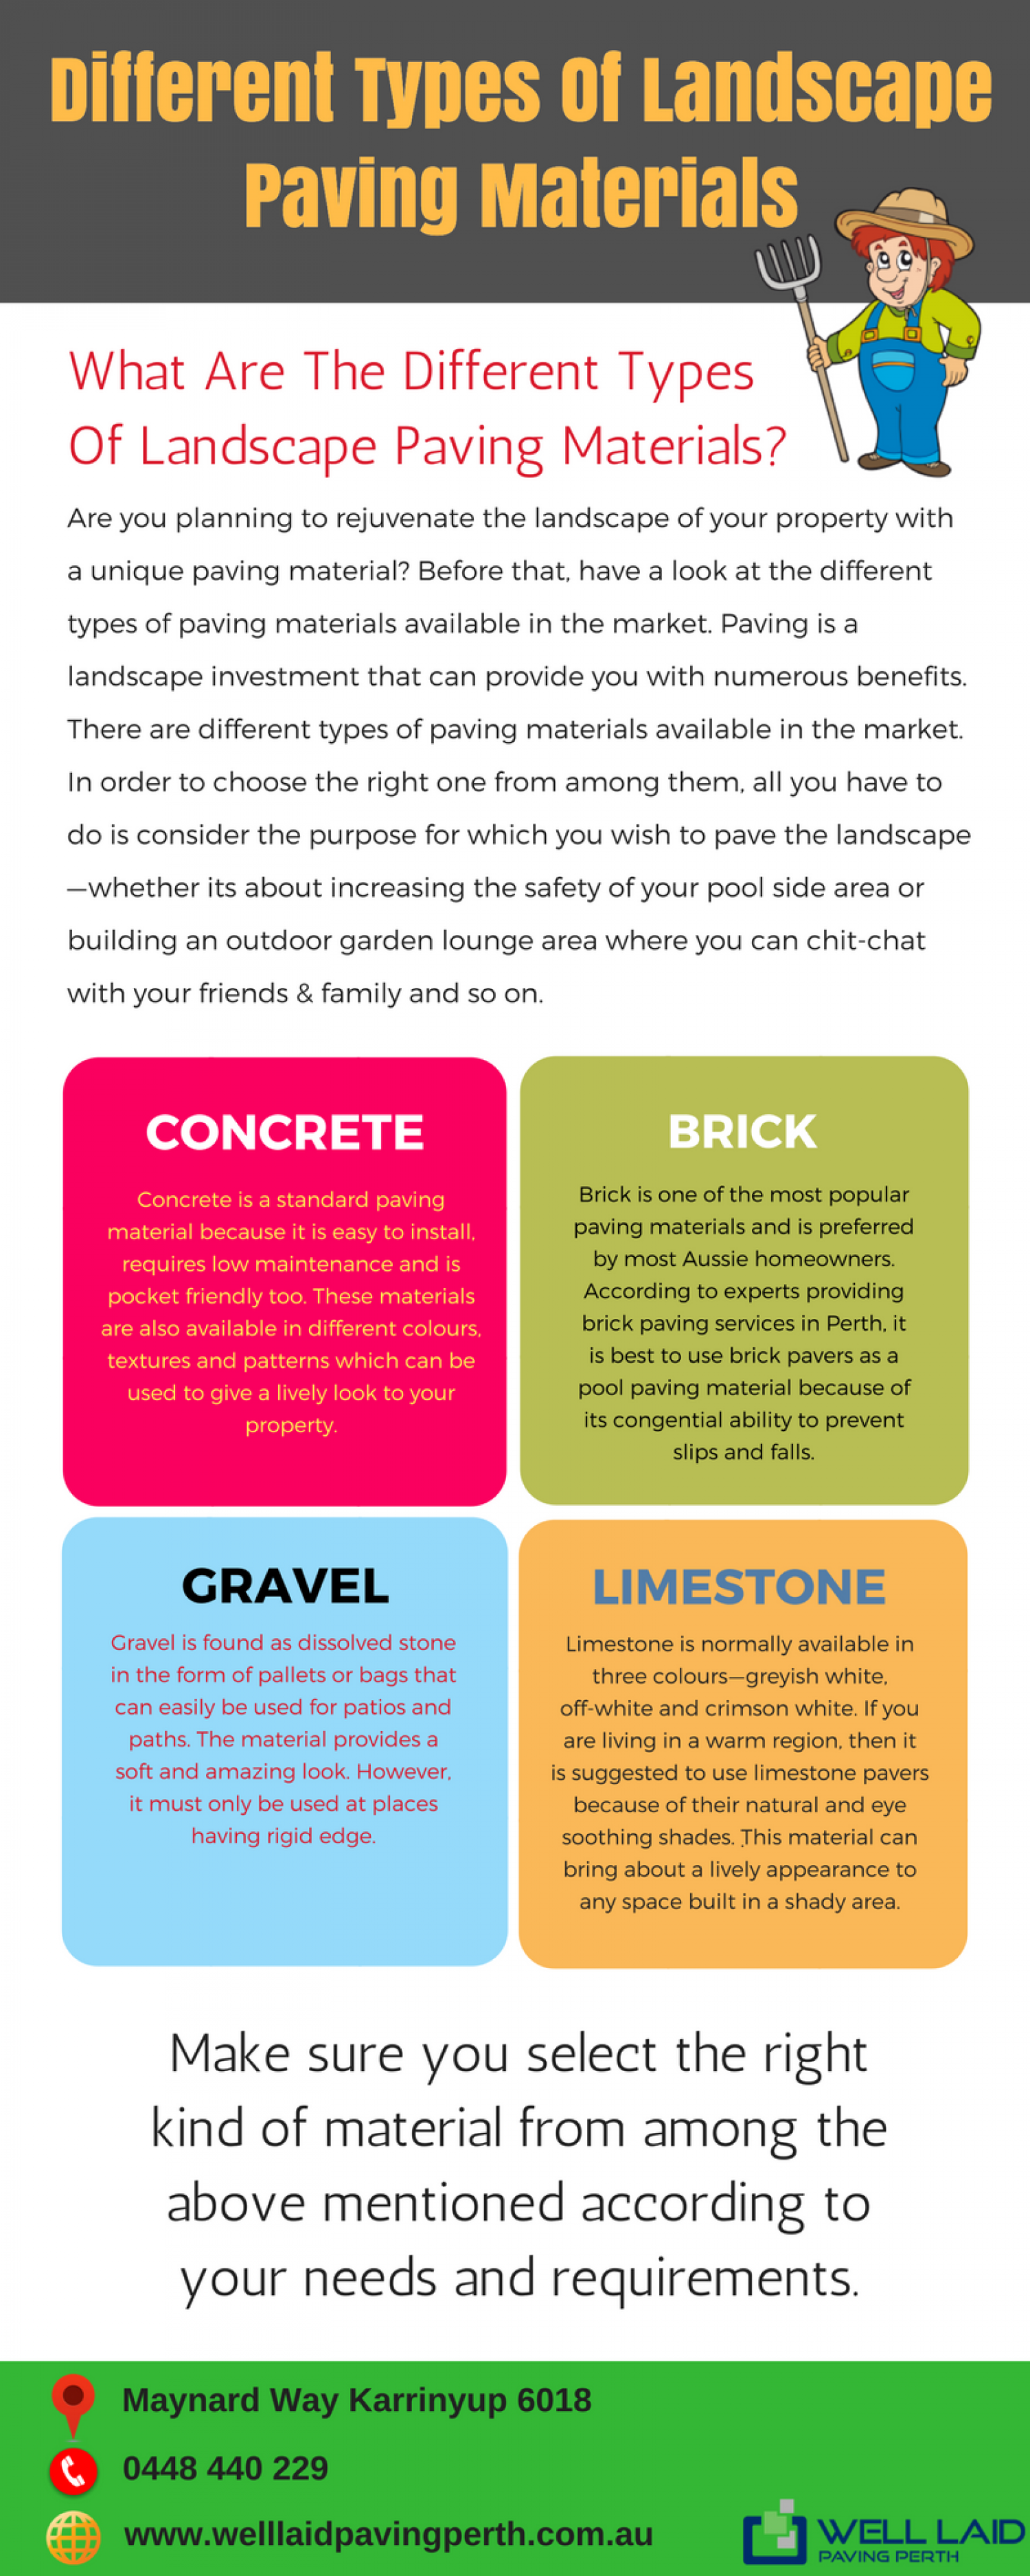 Different Types Of Landscape Paving Materials Infographic